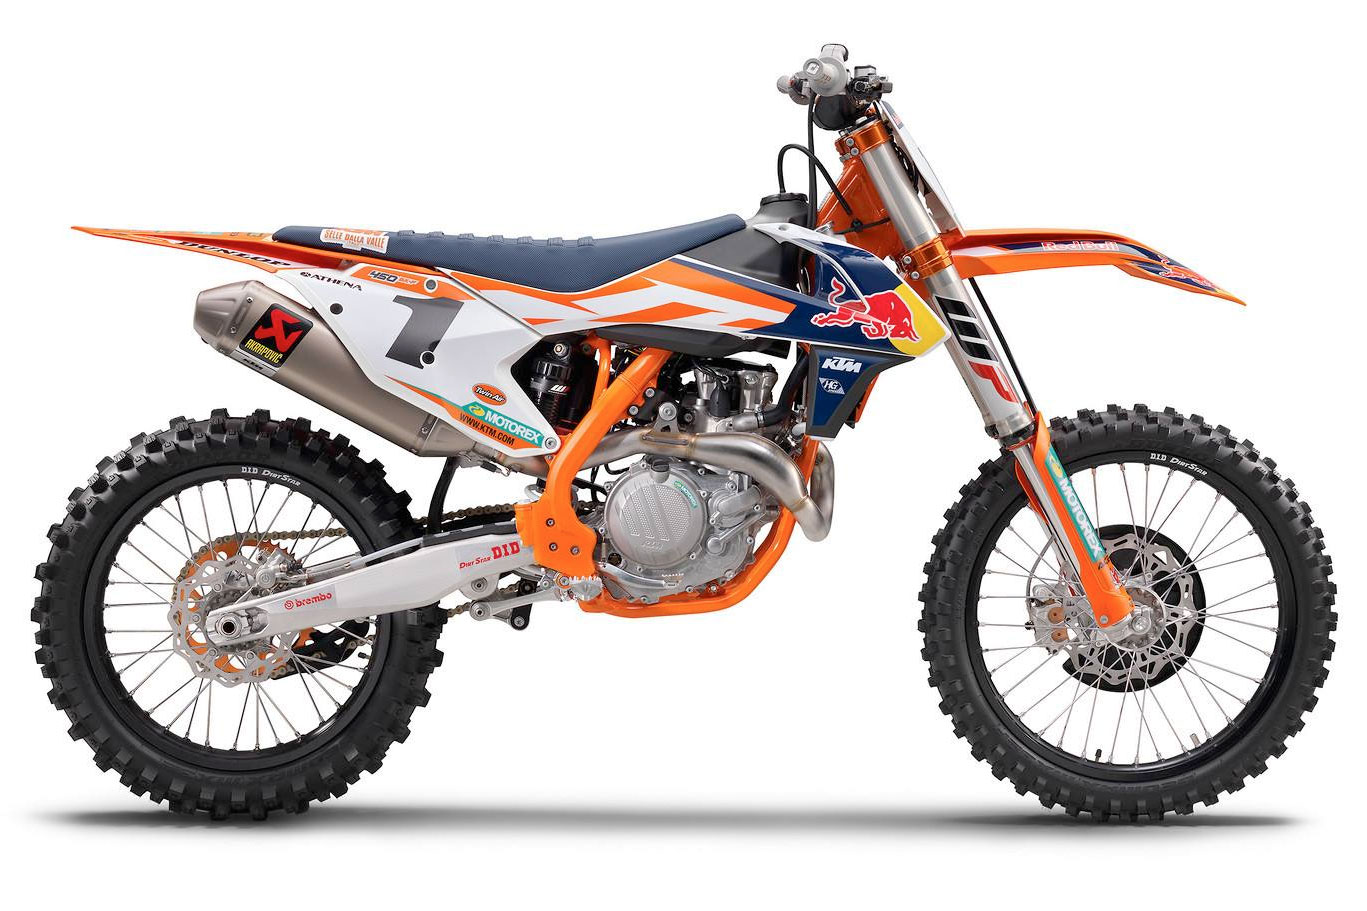 2016 Factory Edition KTM's